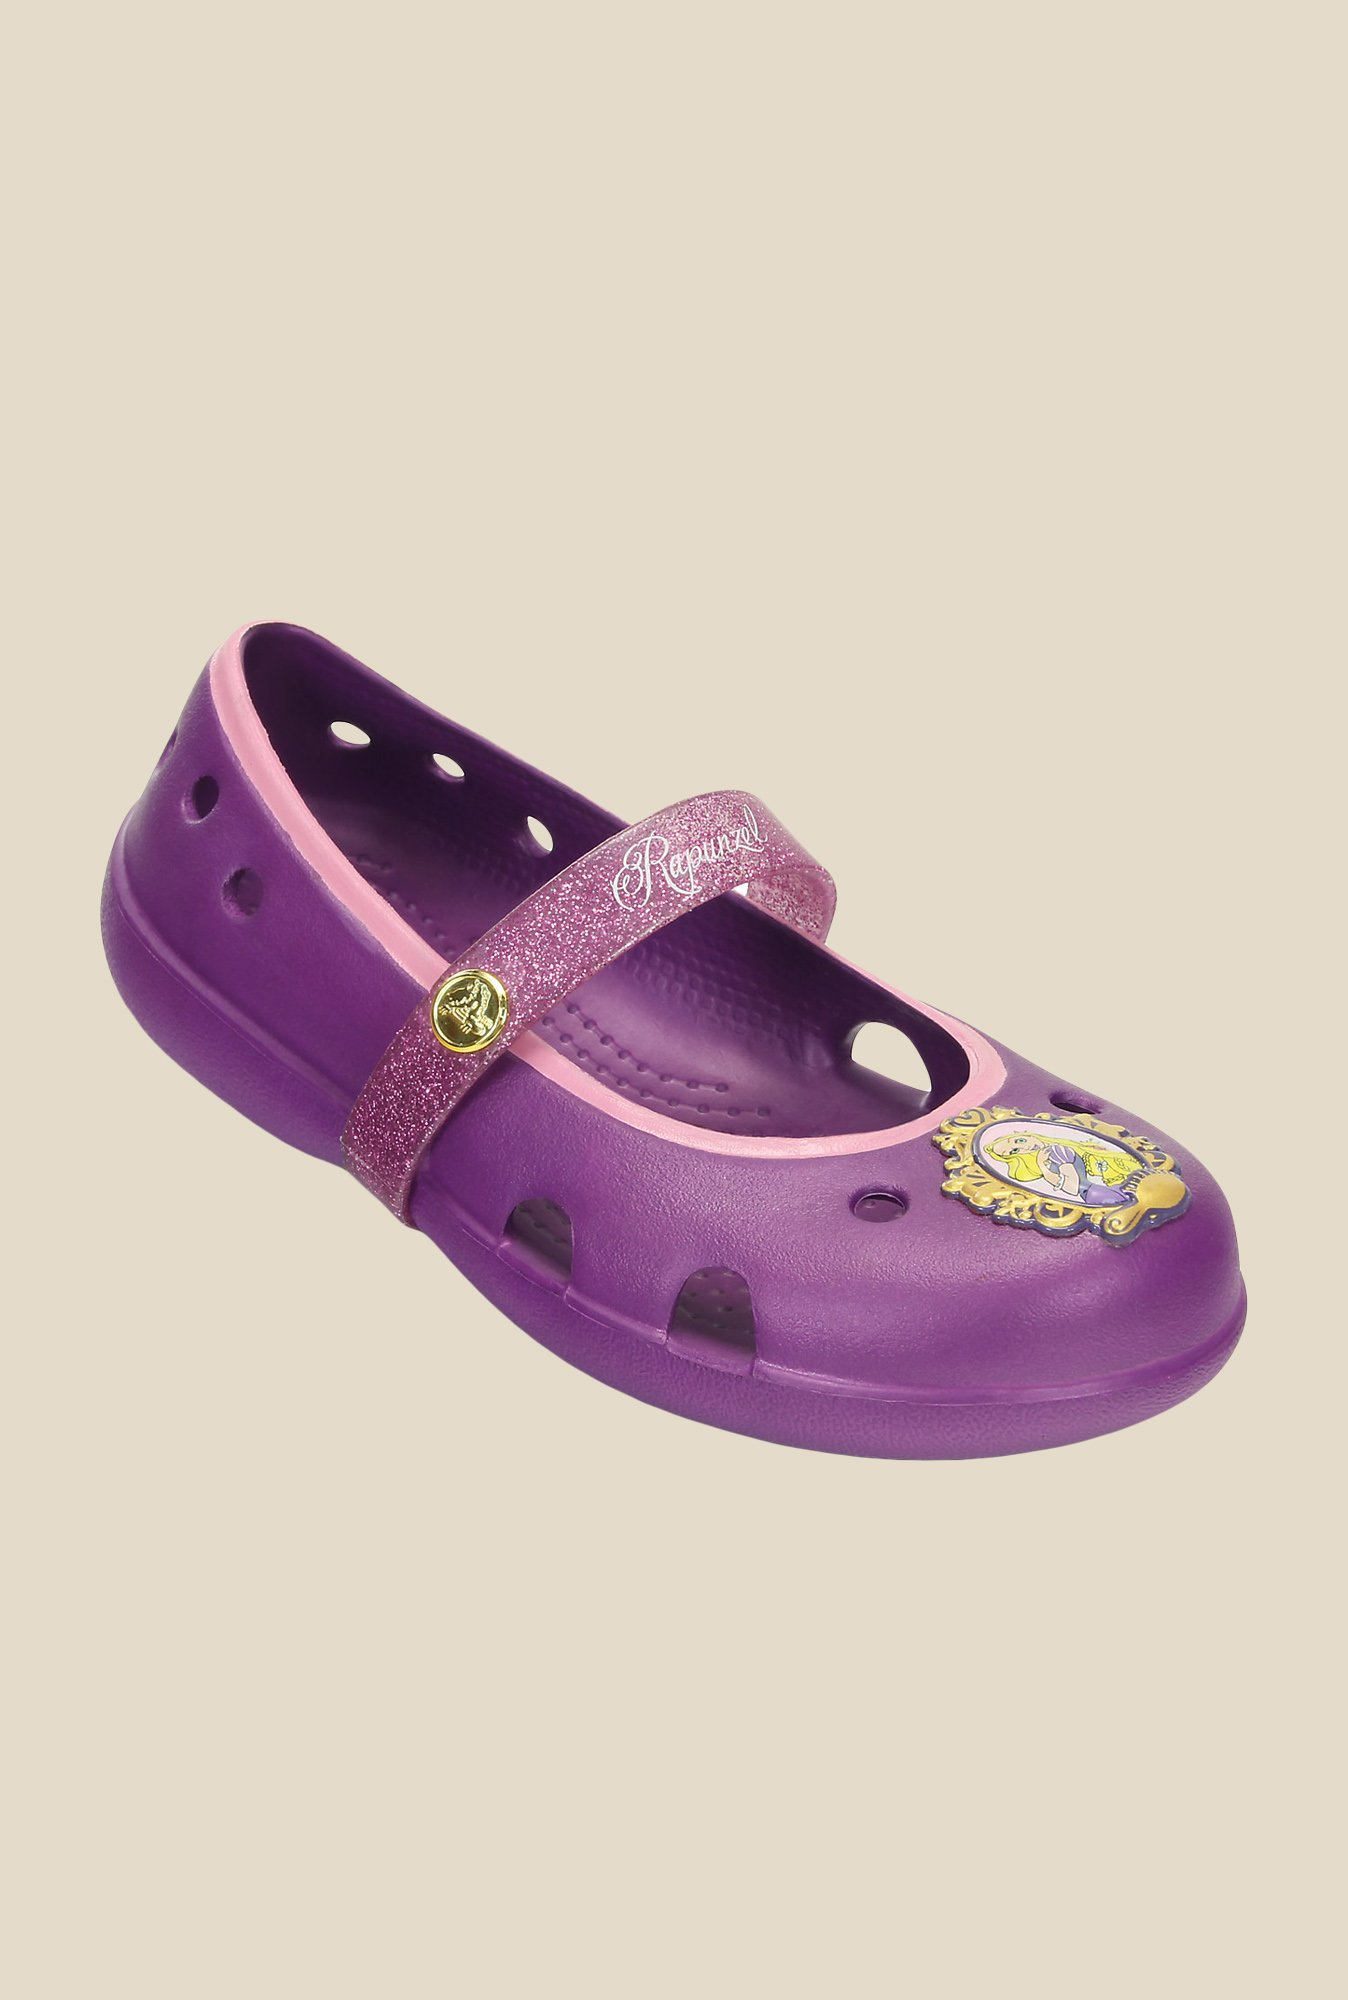 Crocs Keeley Amethyst Mary Jane Shoes